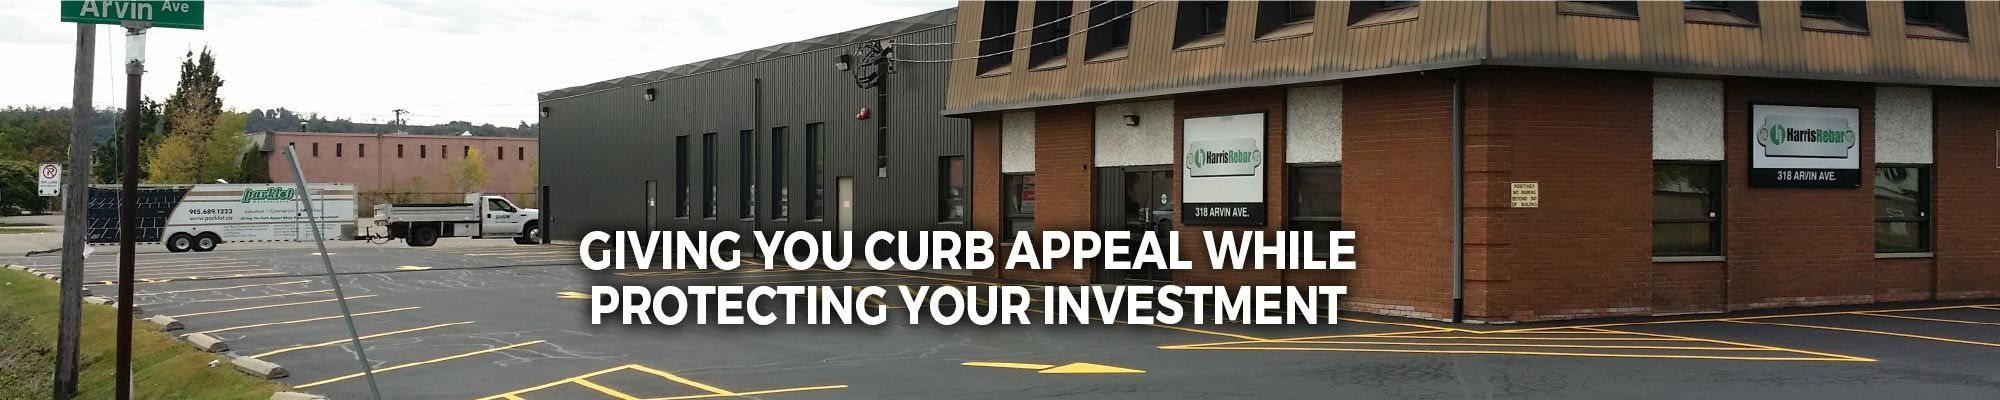 Giving You Curb Appeal, Protecting Your Investment | parking lot